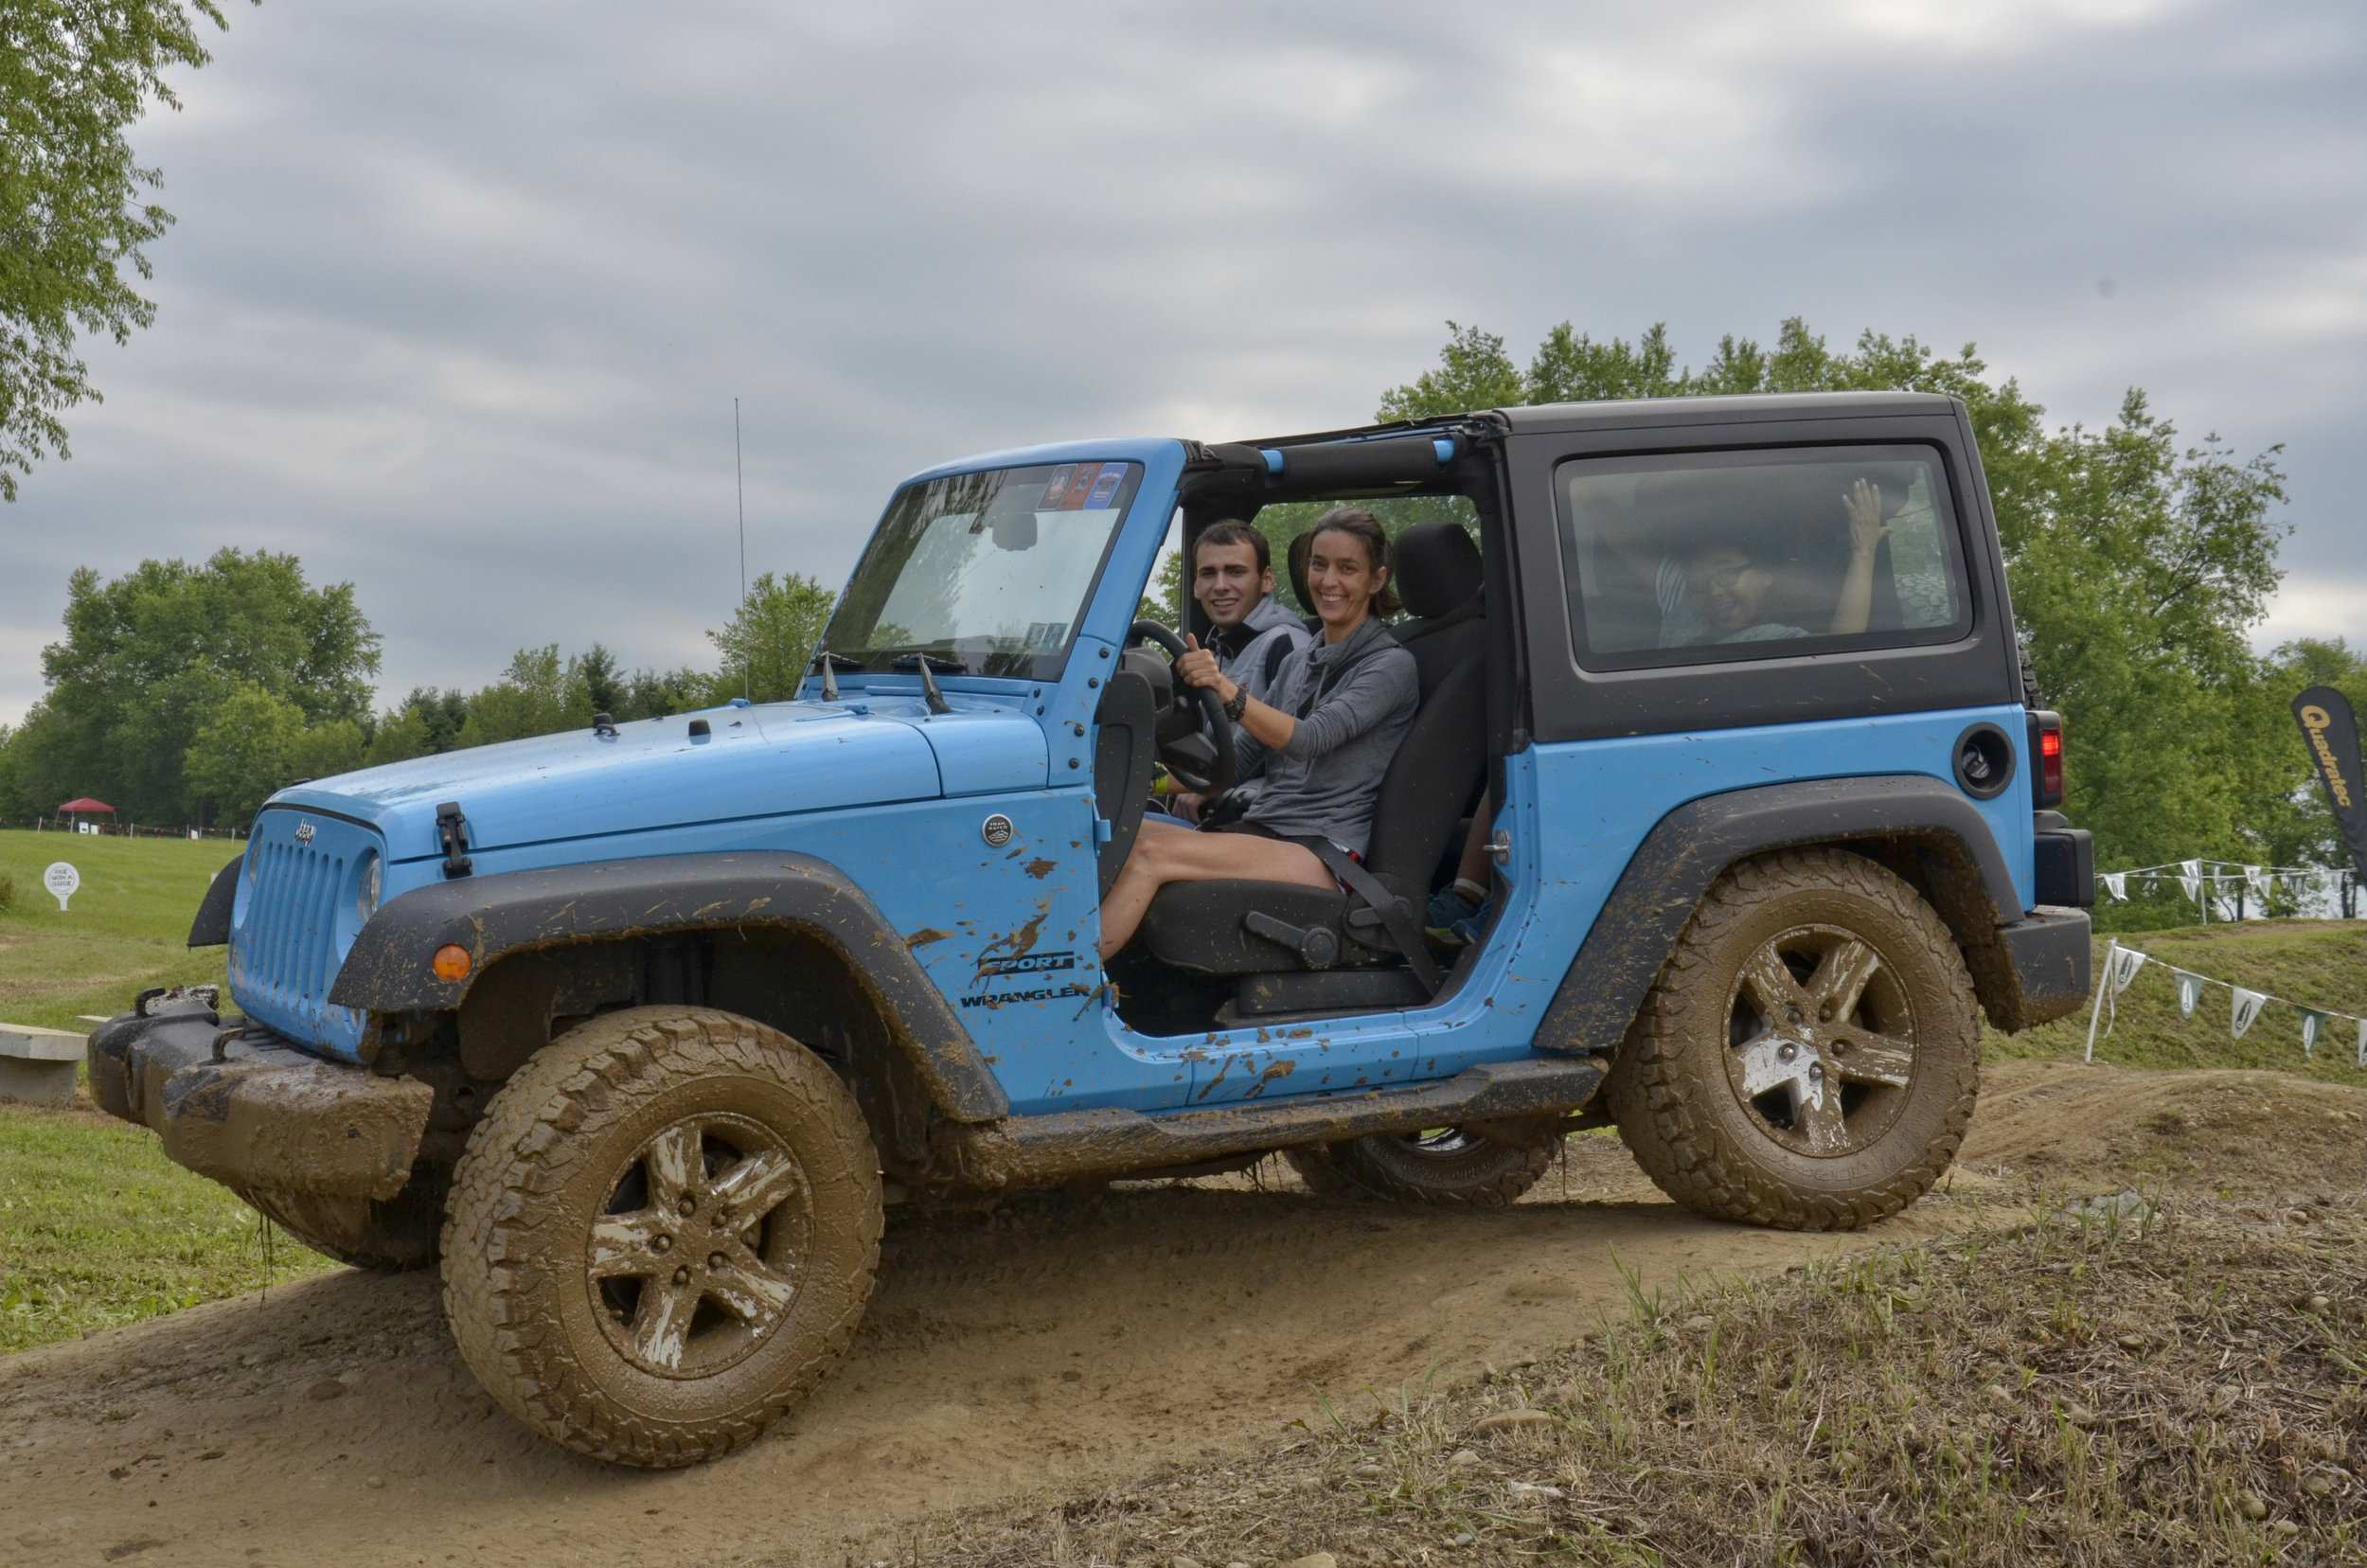 23 All New New Bantam Jeep 2019 First Drive Ratings for New Bantam Jeep 2019 First Drive